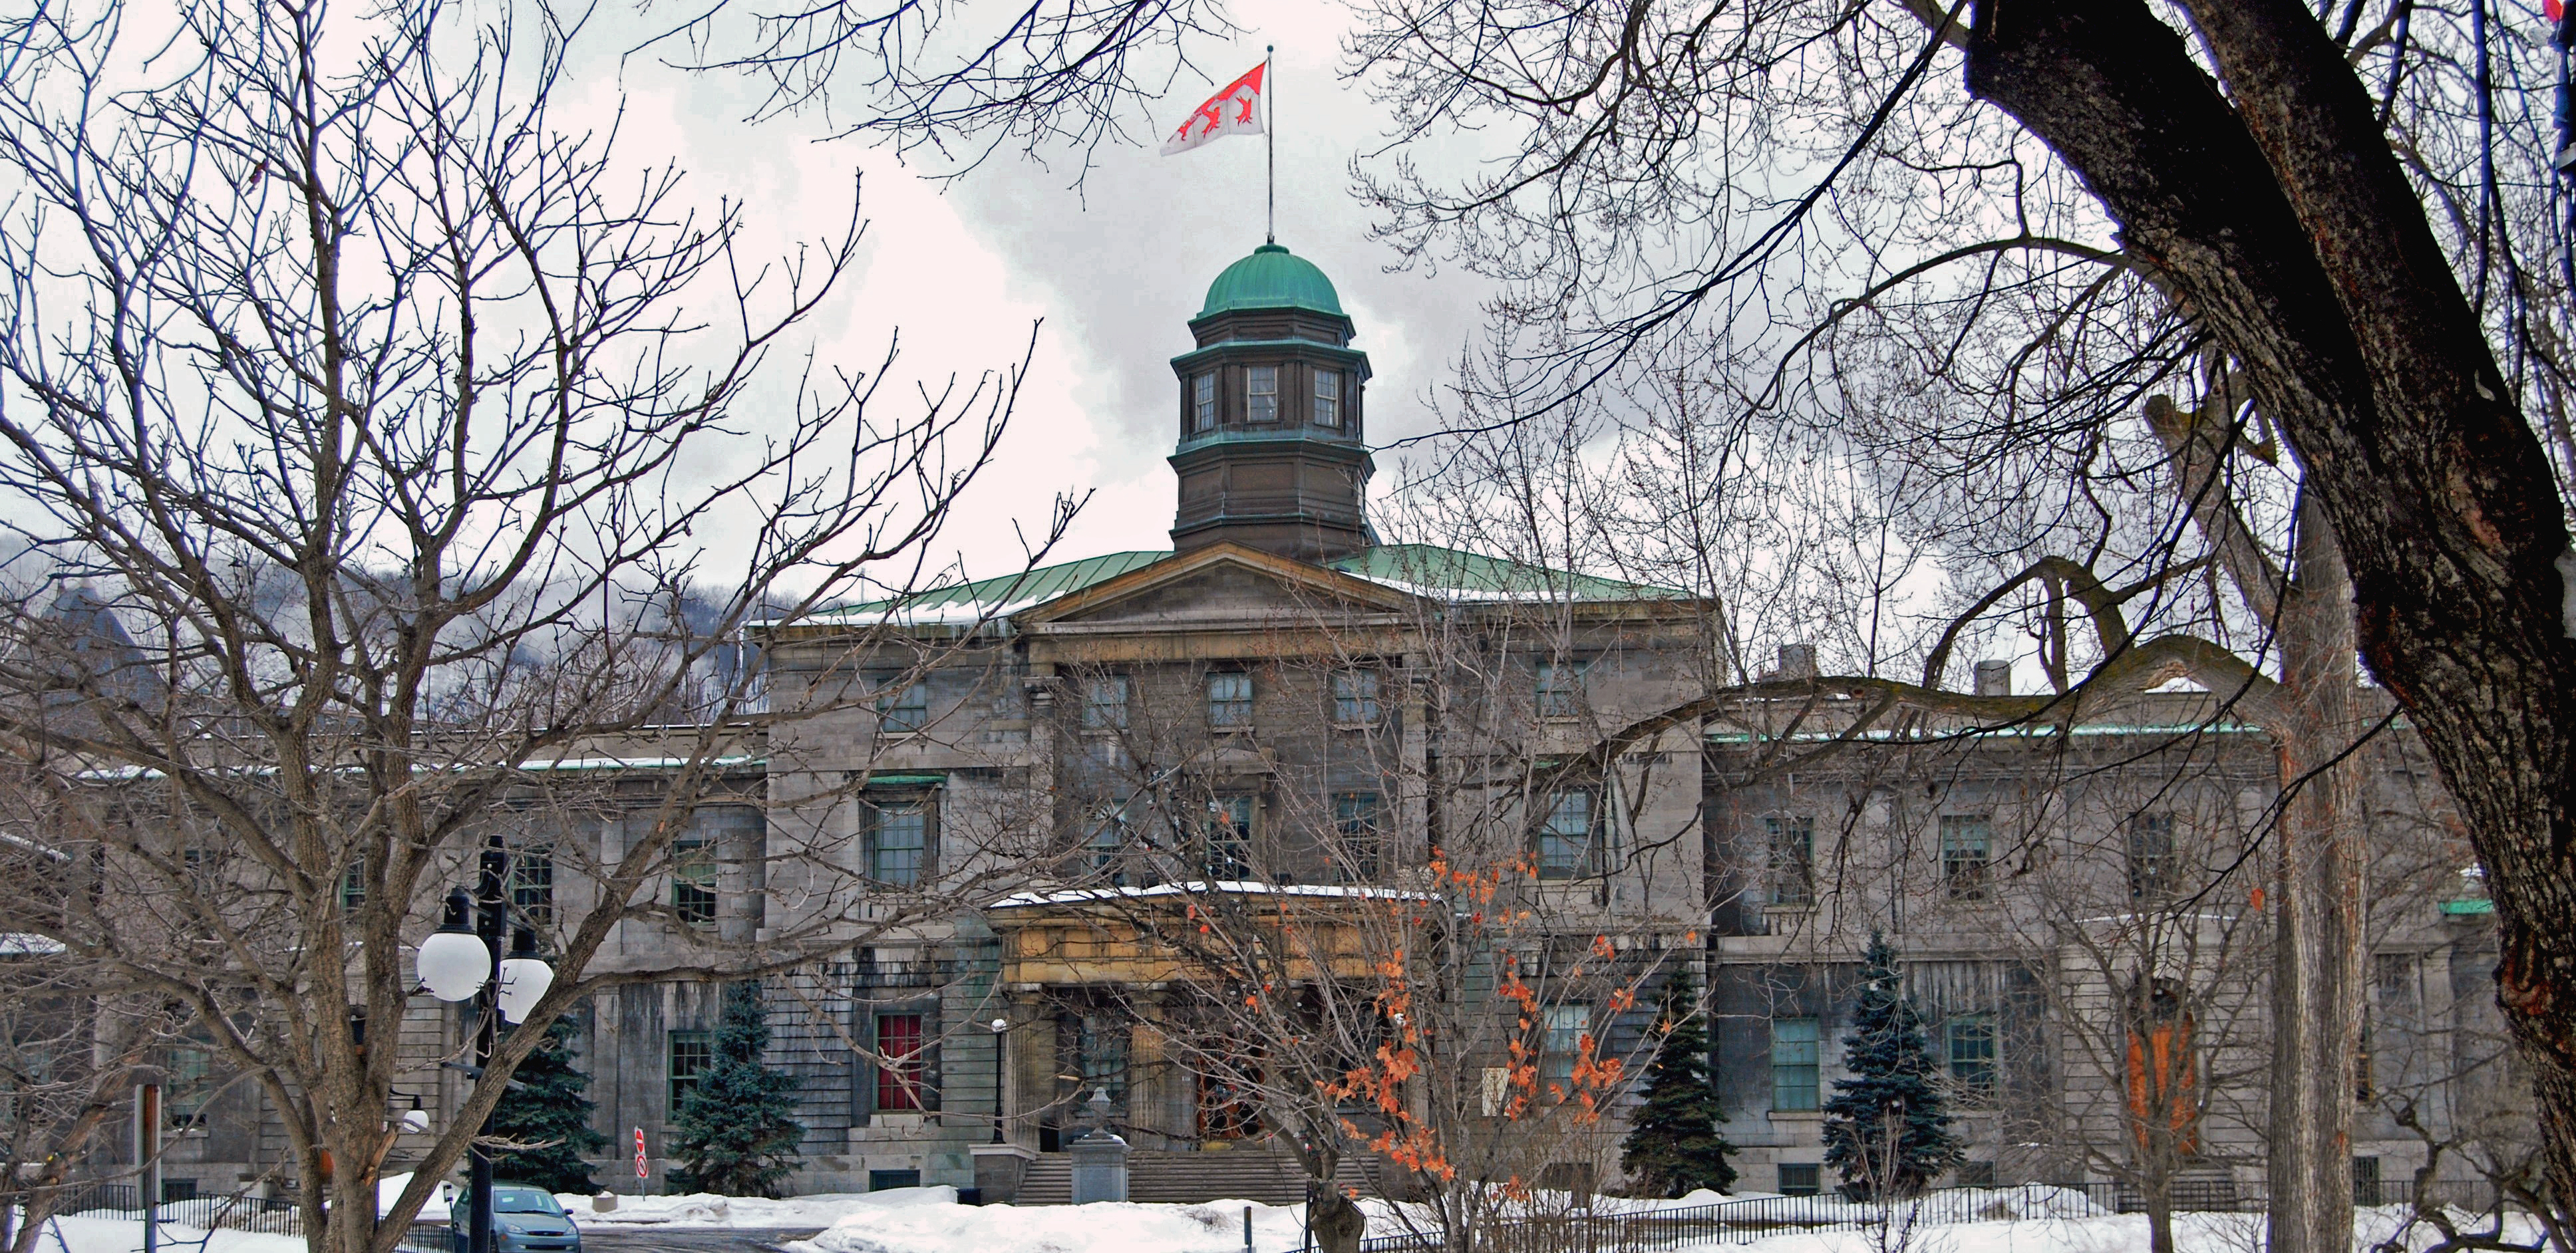 McGill's International Students Hold Fast to Future Hopes